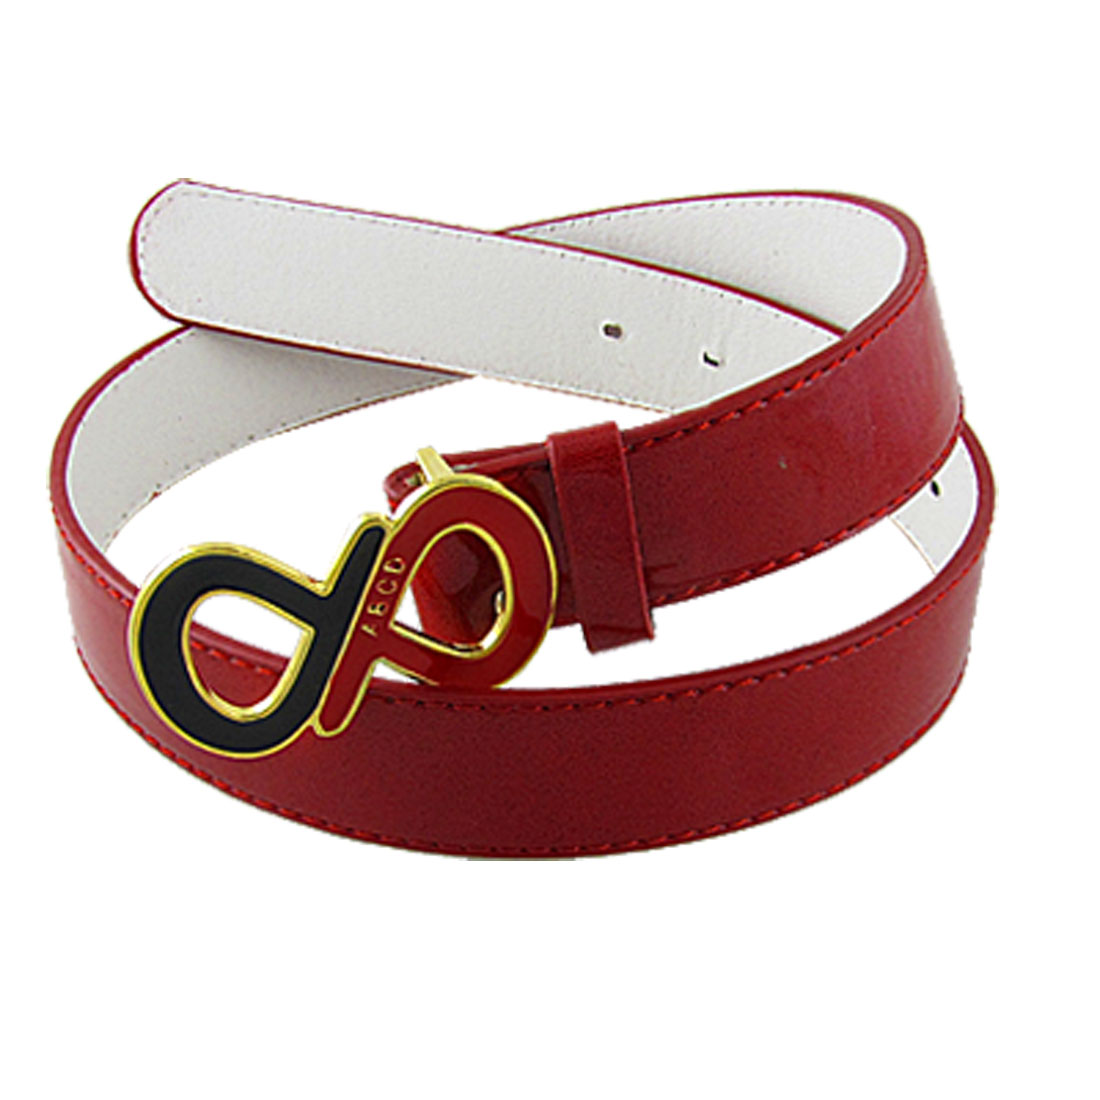 Slide Buckle Red Adjustable Faux Leather Waist Band for Women